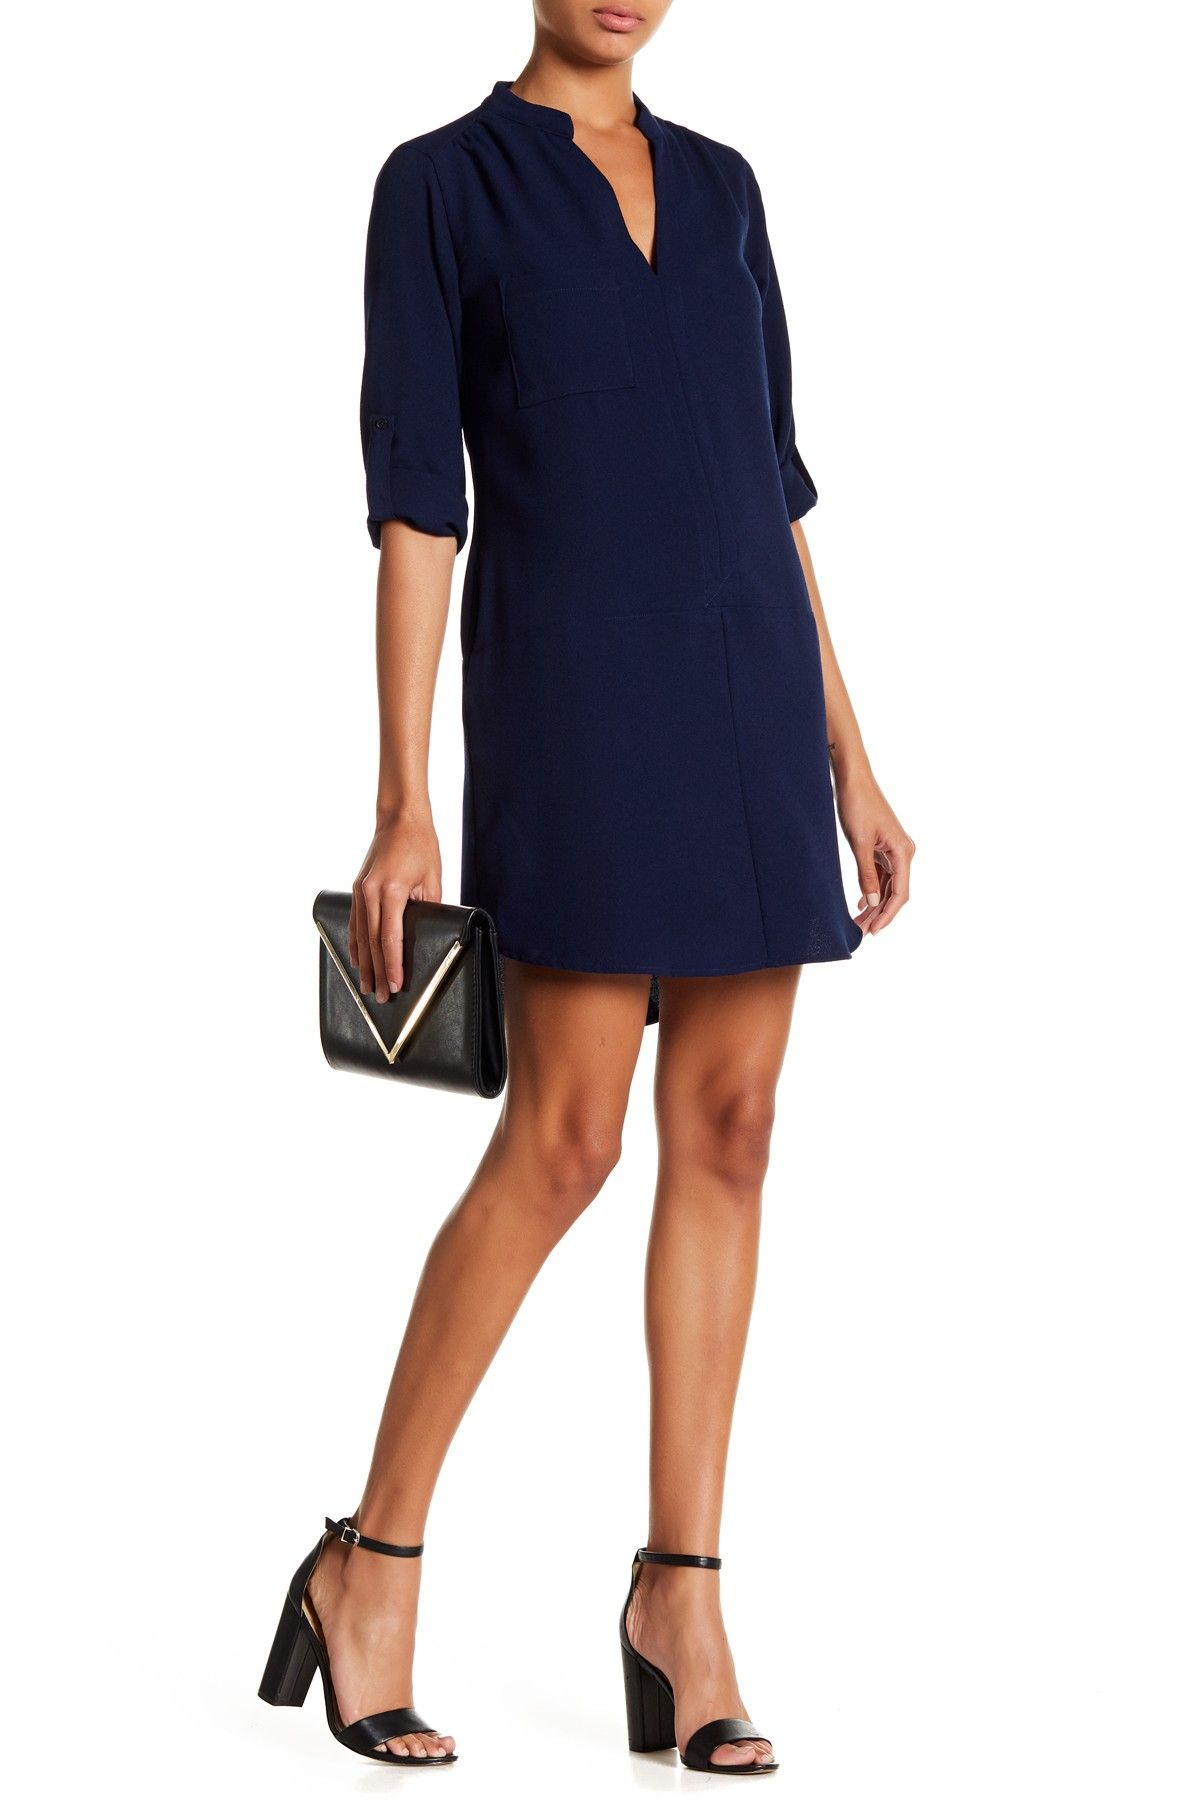 Lush | Novak 3/4 Sleeve Shift Dress #nordstromrack